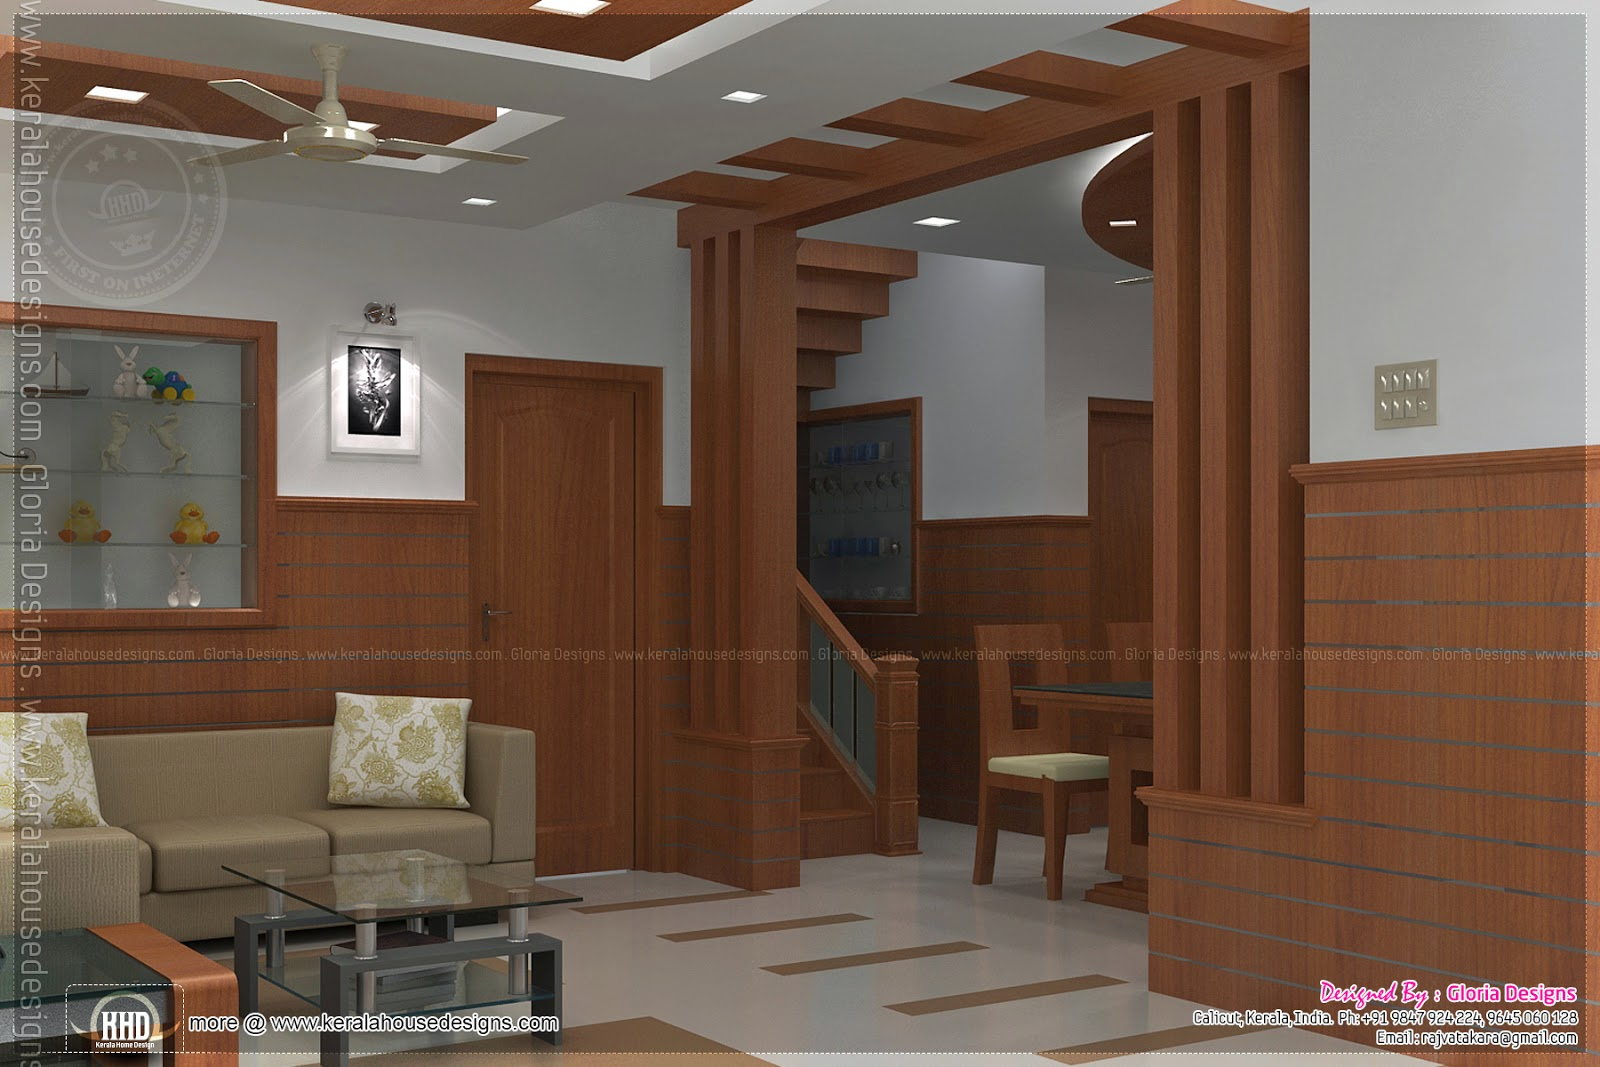 Home interior designs by gloria designs calicut kerala for Interior designs in kerala